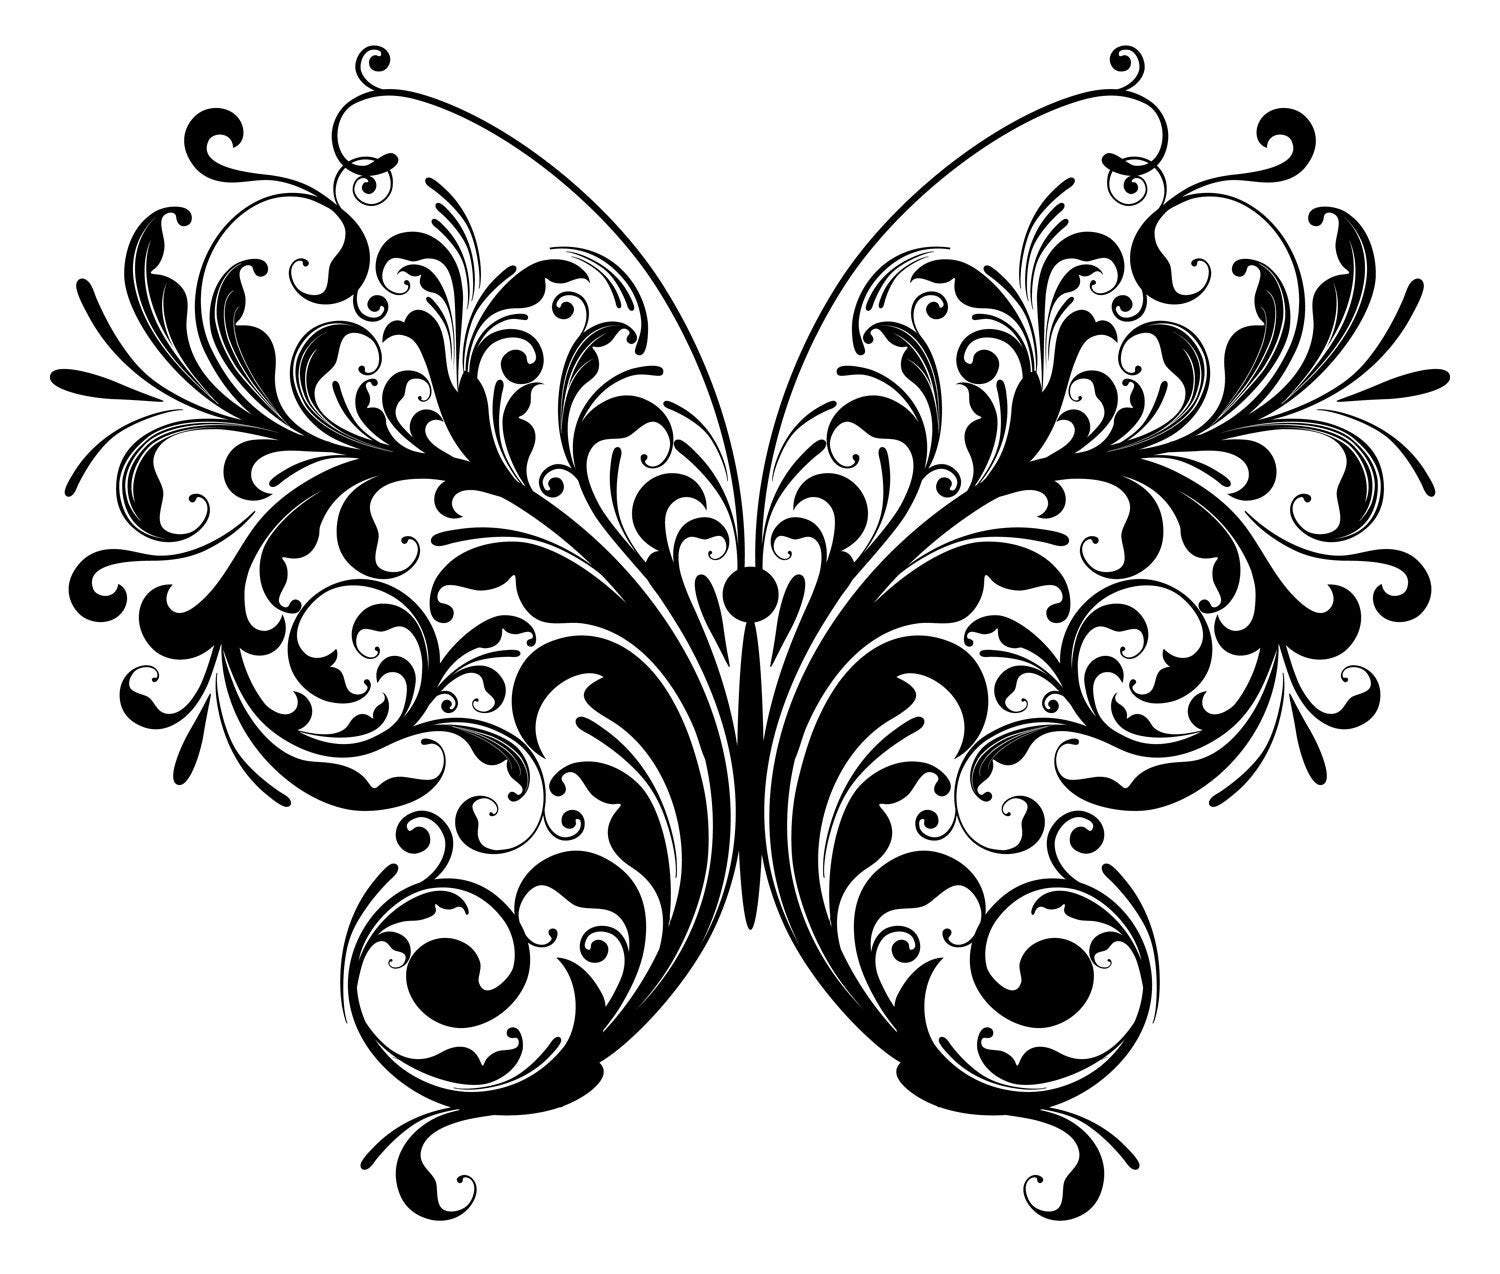 Butterfly SVG file, Butterfly Silhouette, Butterfly Clipart, Cut File,  Butterfly Vector, svg, dxf, eps, png.